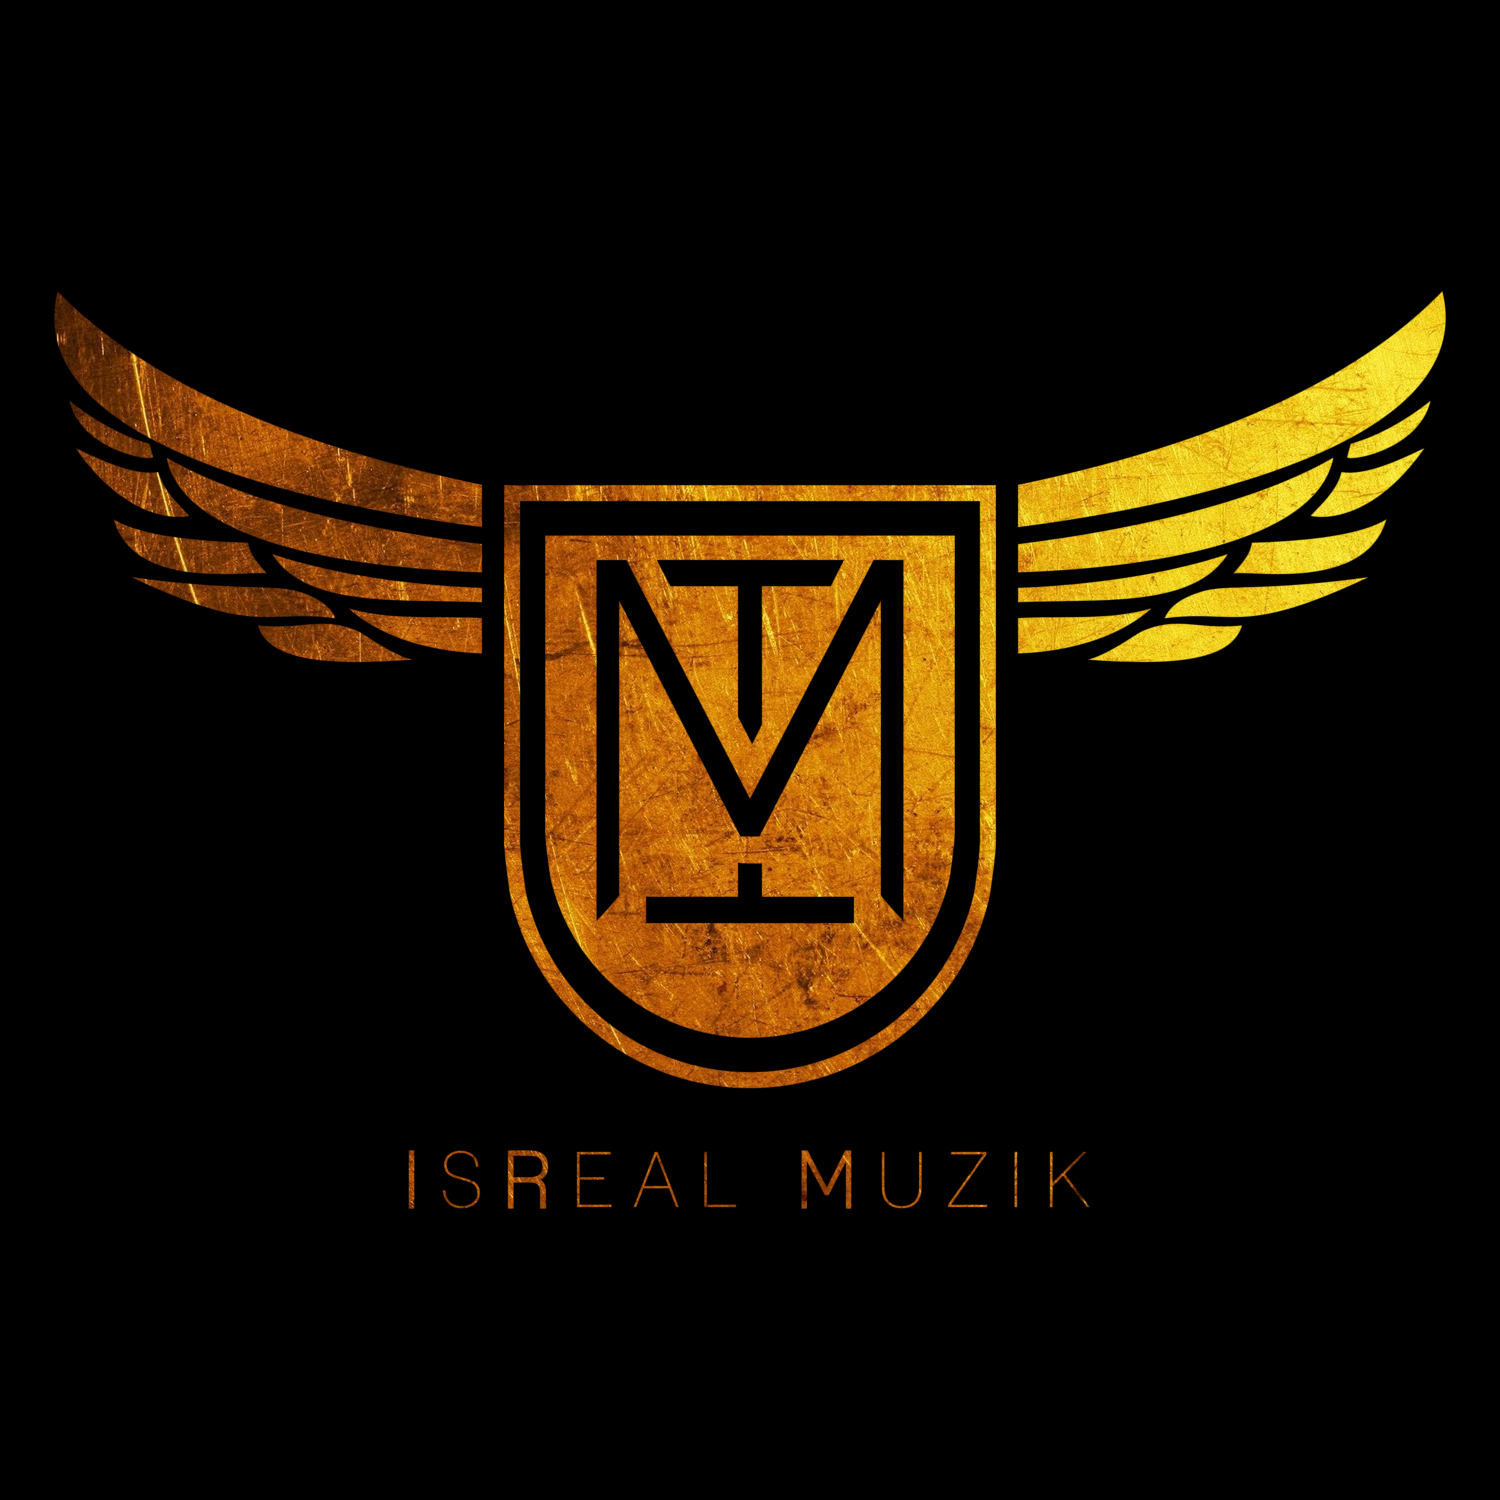 isreal-muzik-logo-design-servant-productions